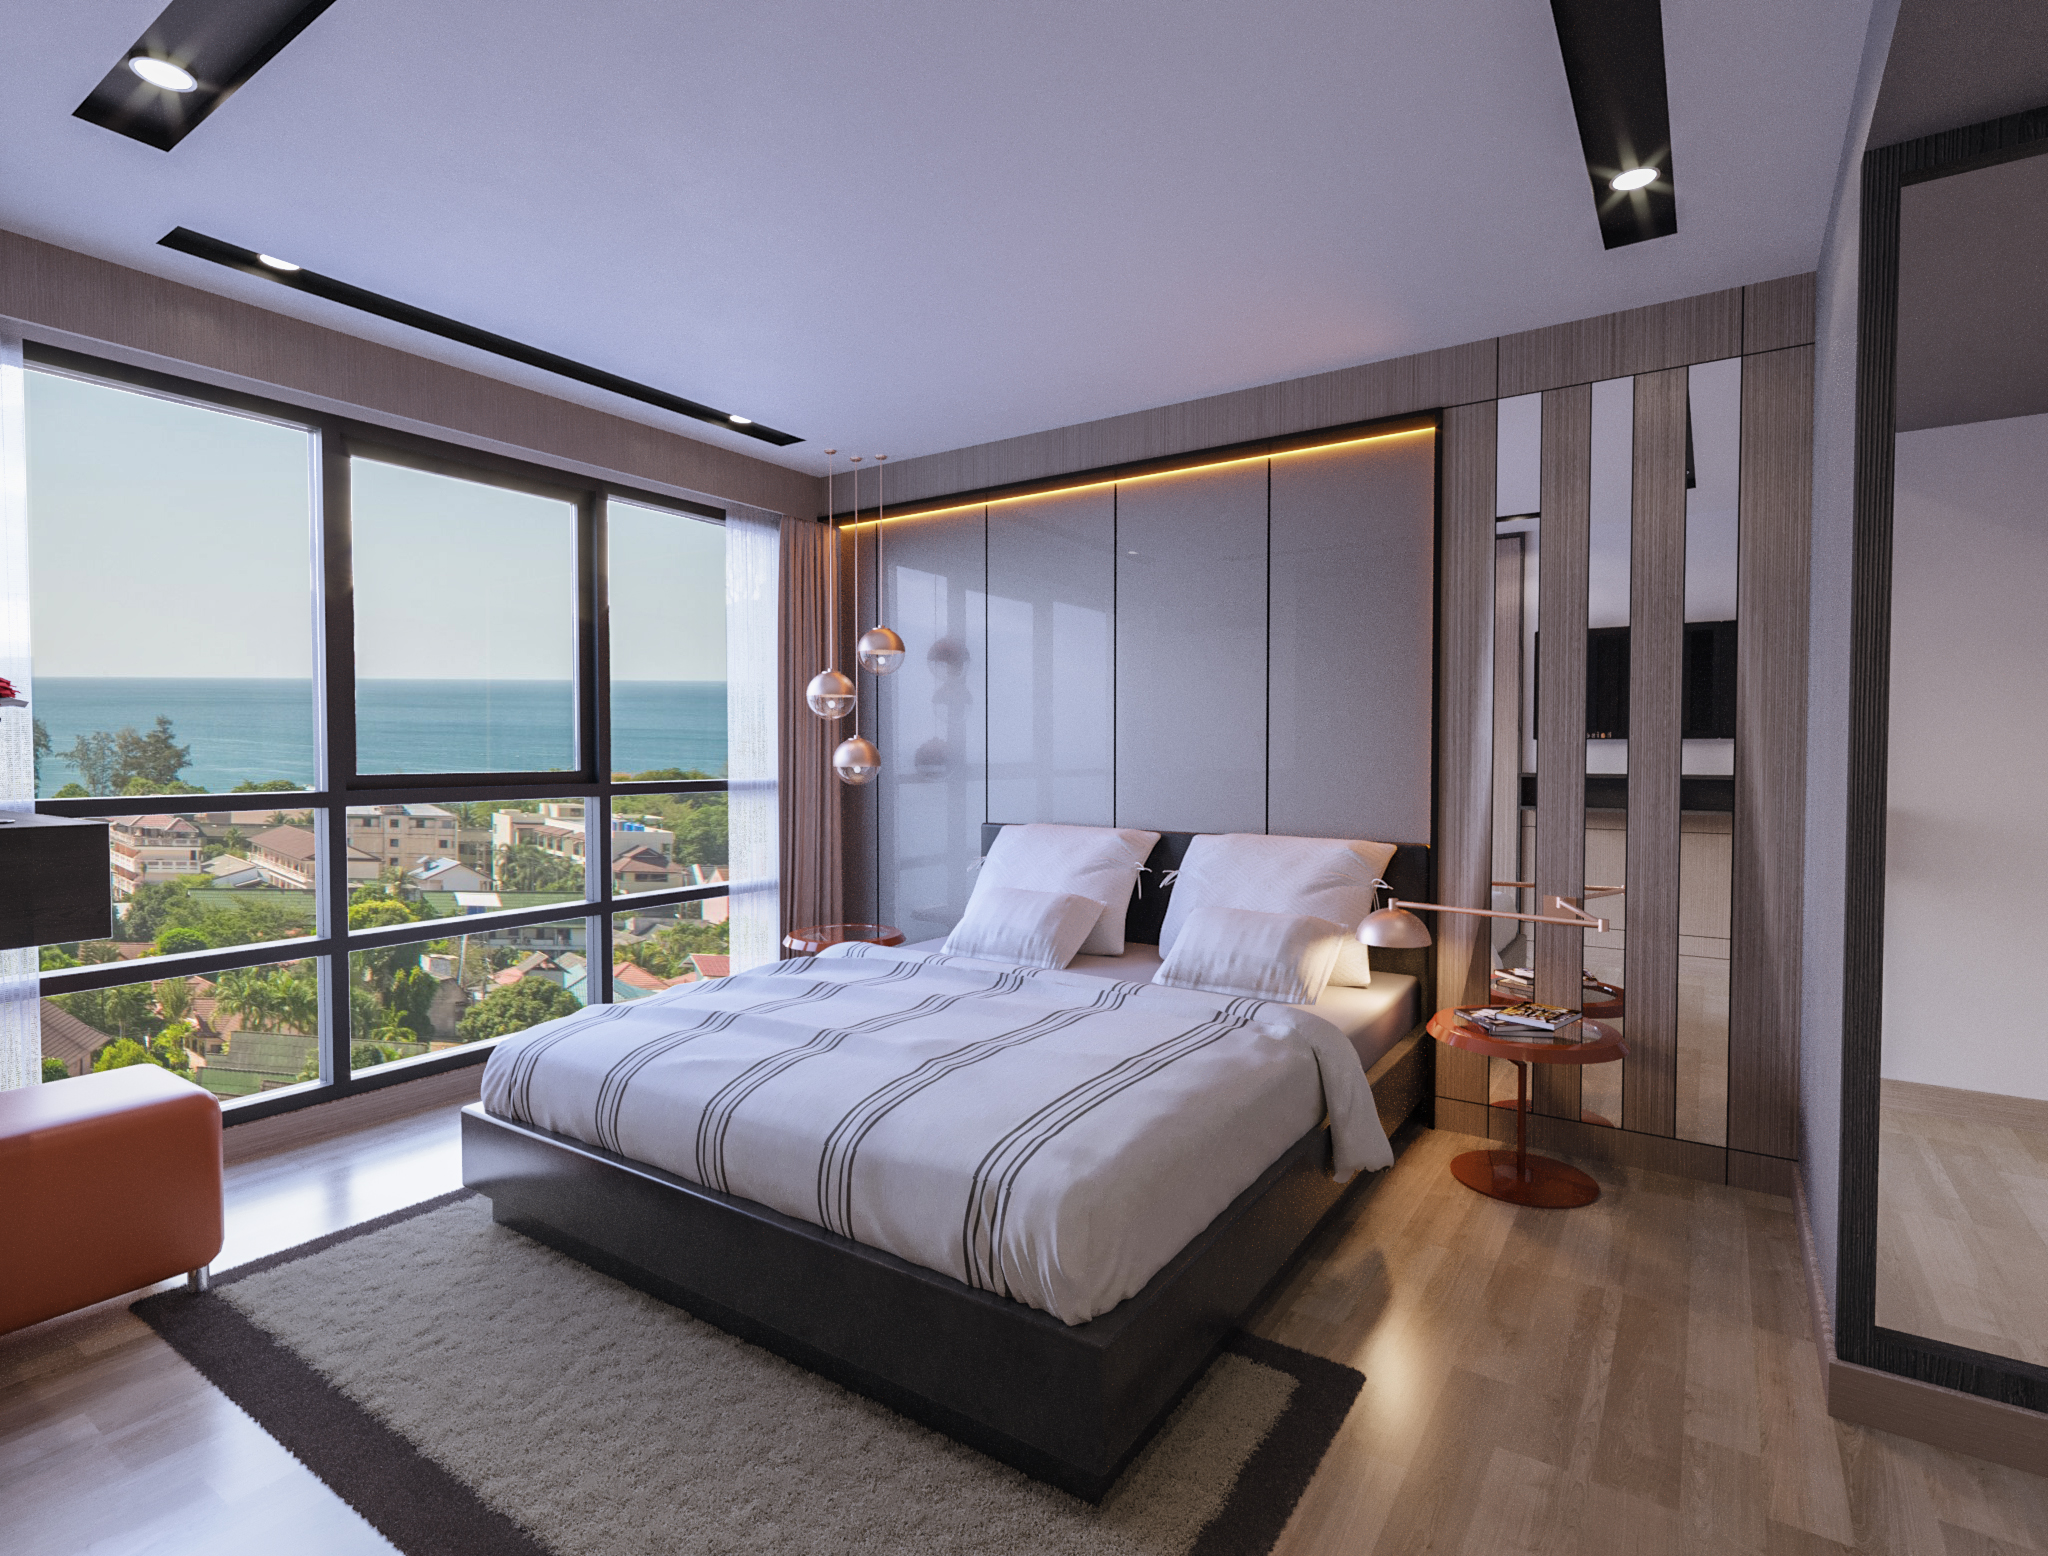 Seaview bedroom in VIPKaron by Phuket9